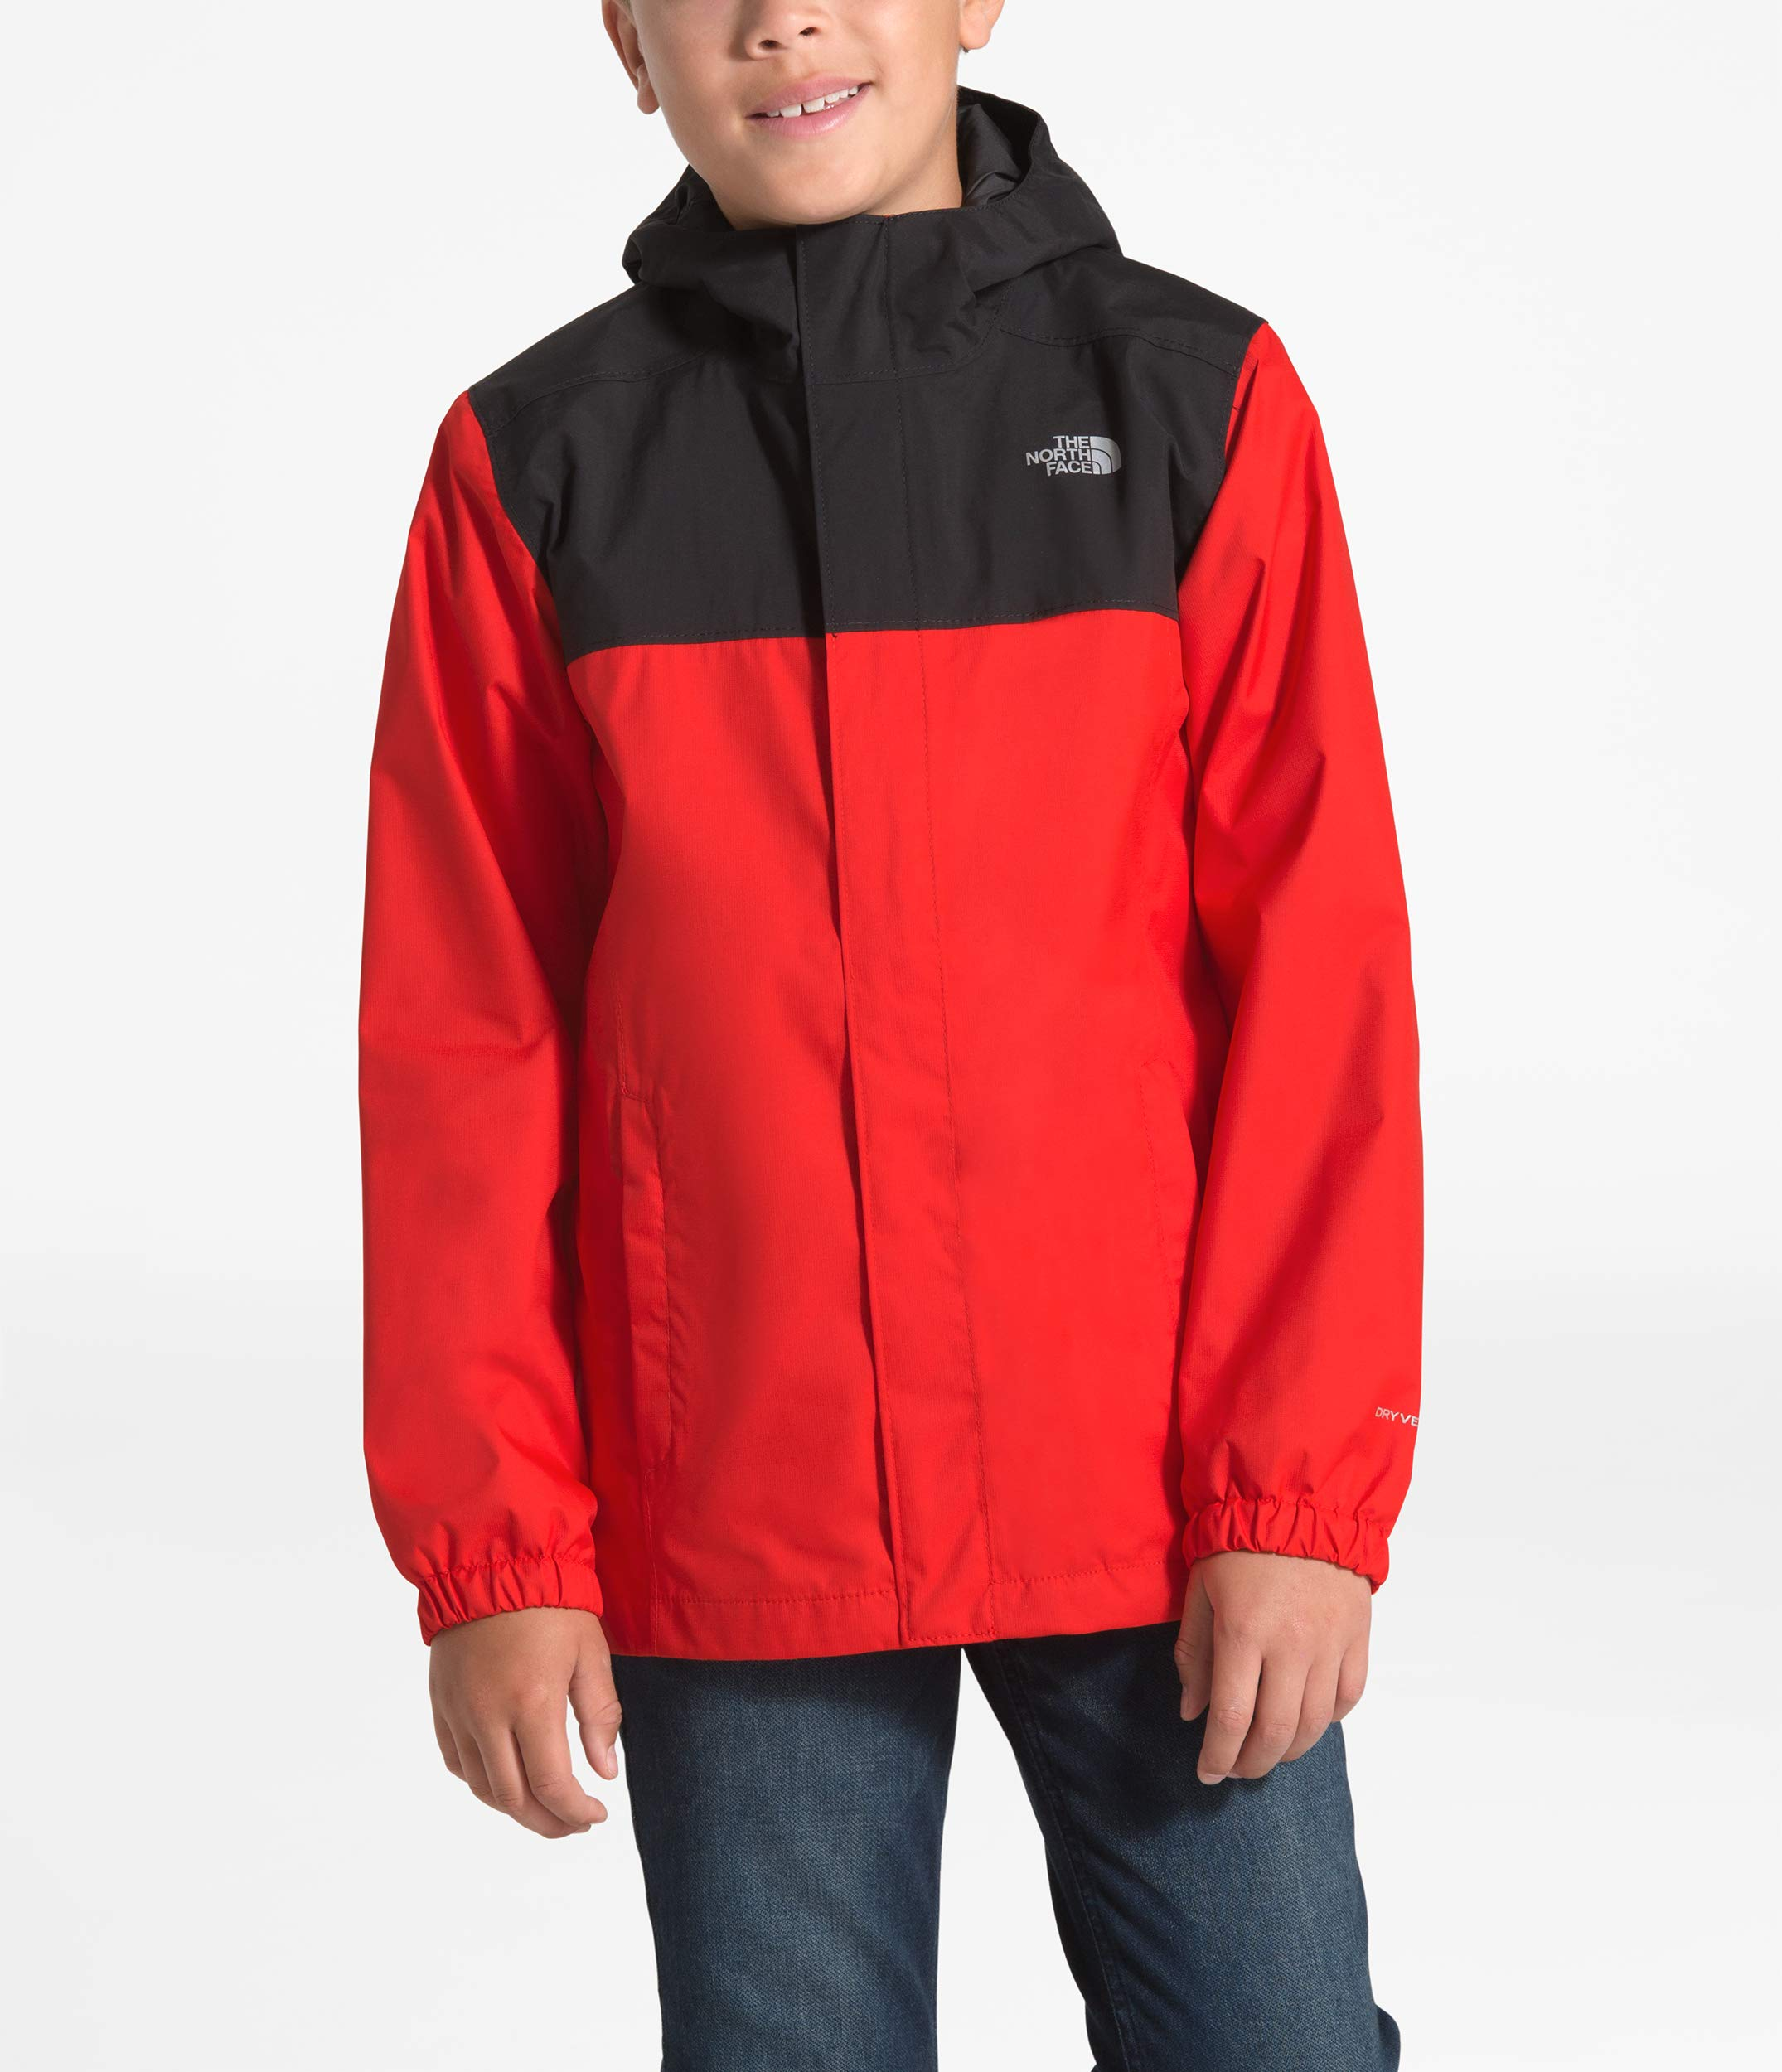 The North Face Kids Boy's Resolve Reflective Jacket (Little Kids/Big Kids) Fiery Red XX-Small by The North Face